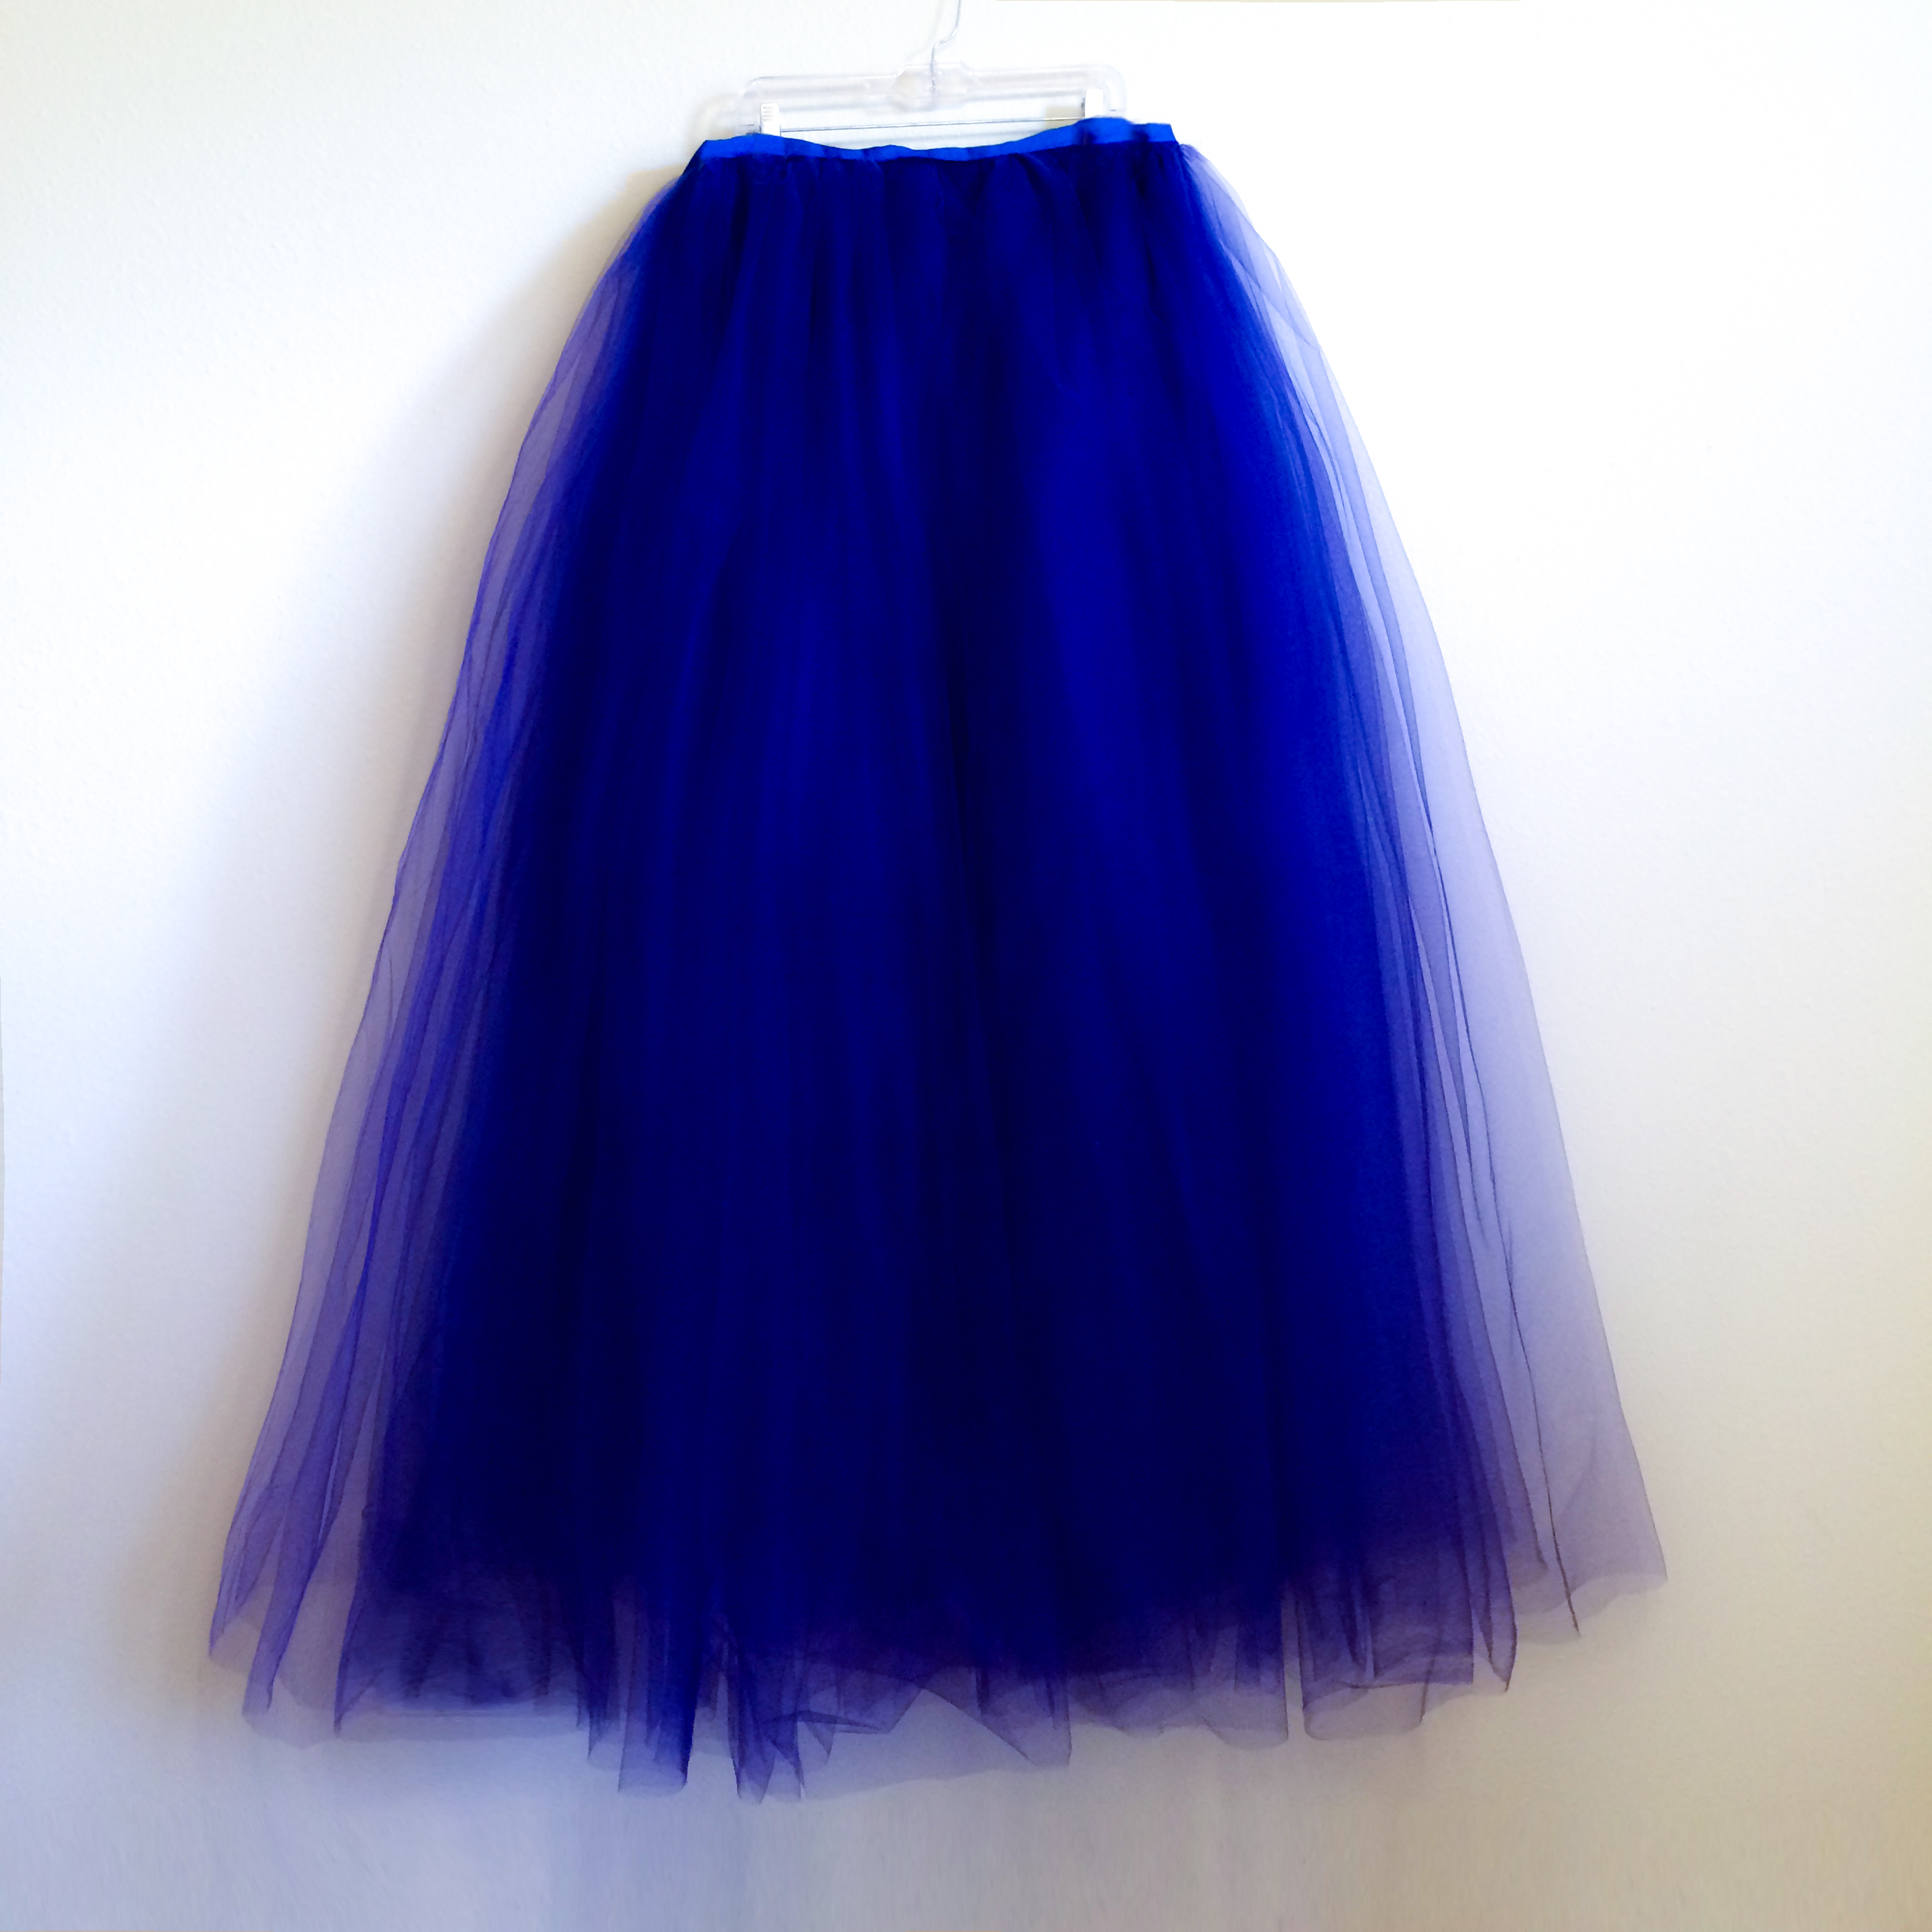 Skirt - Royal Blue Tulle